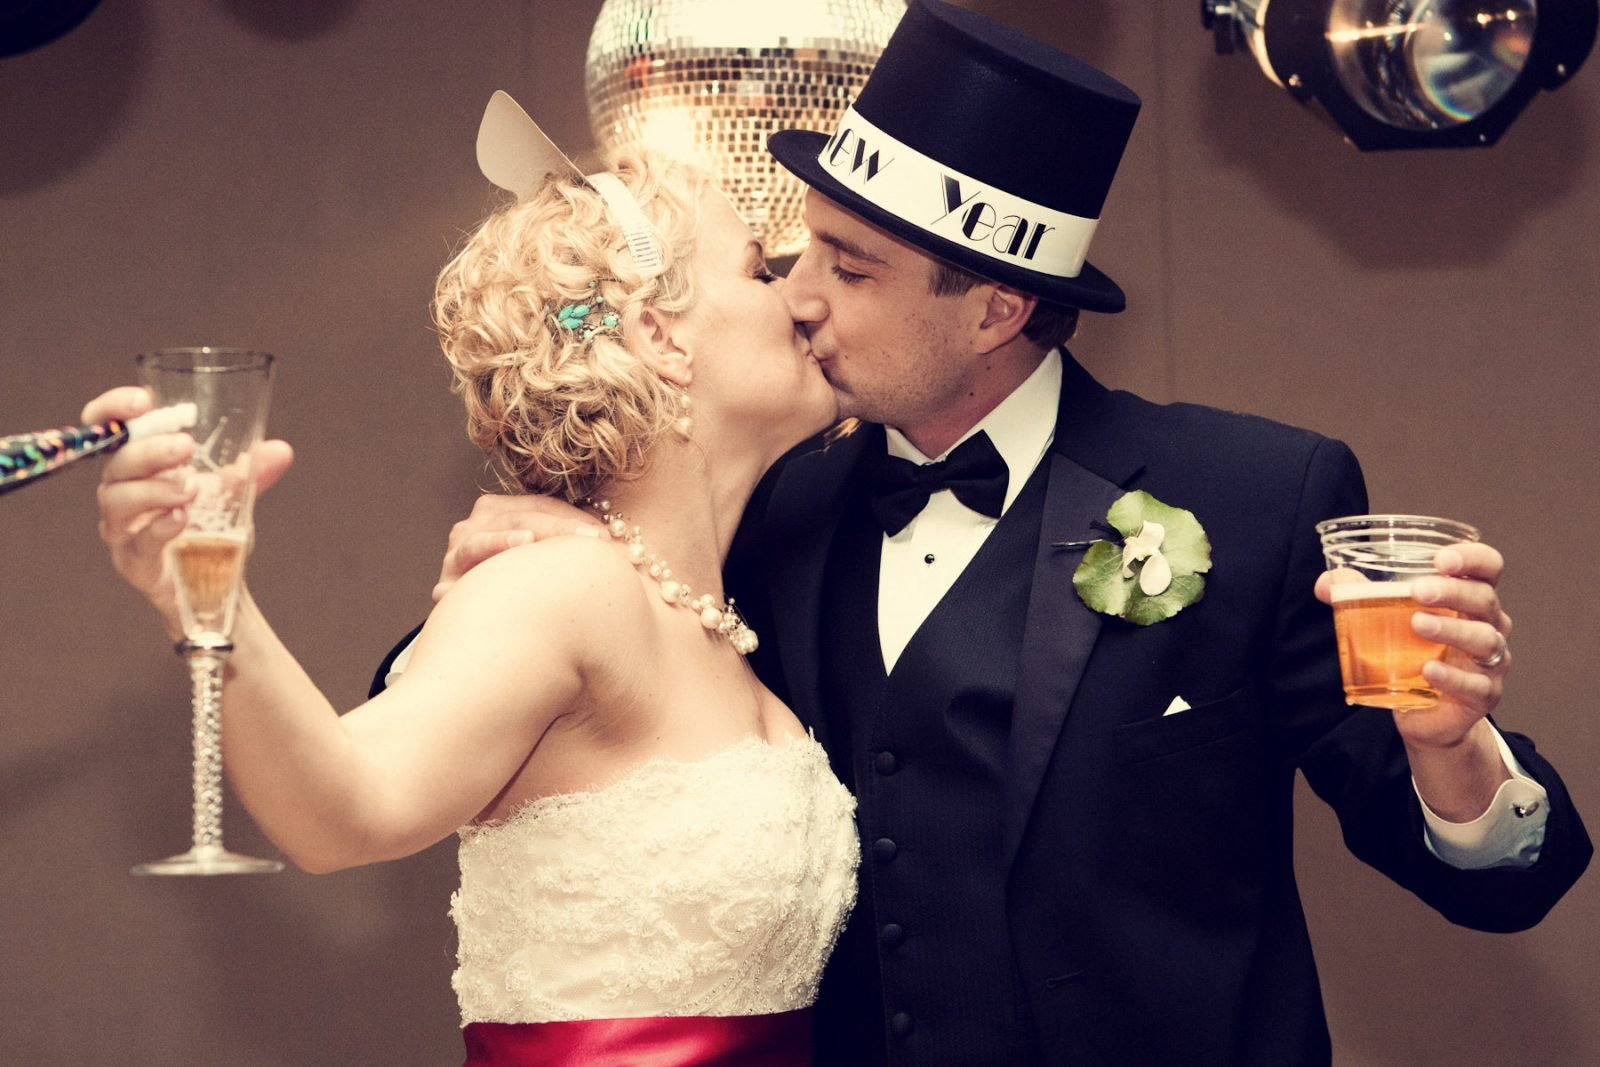 Romantic Kiss for New Years Eve Party Vintage